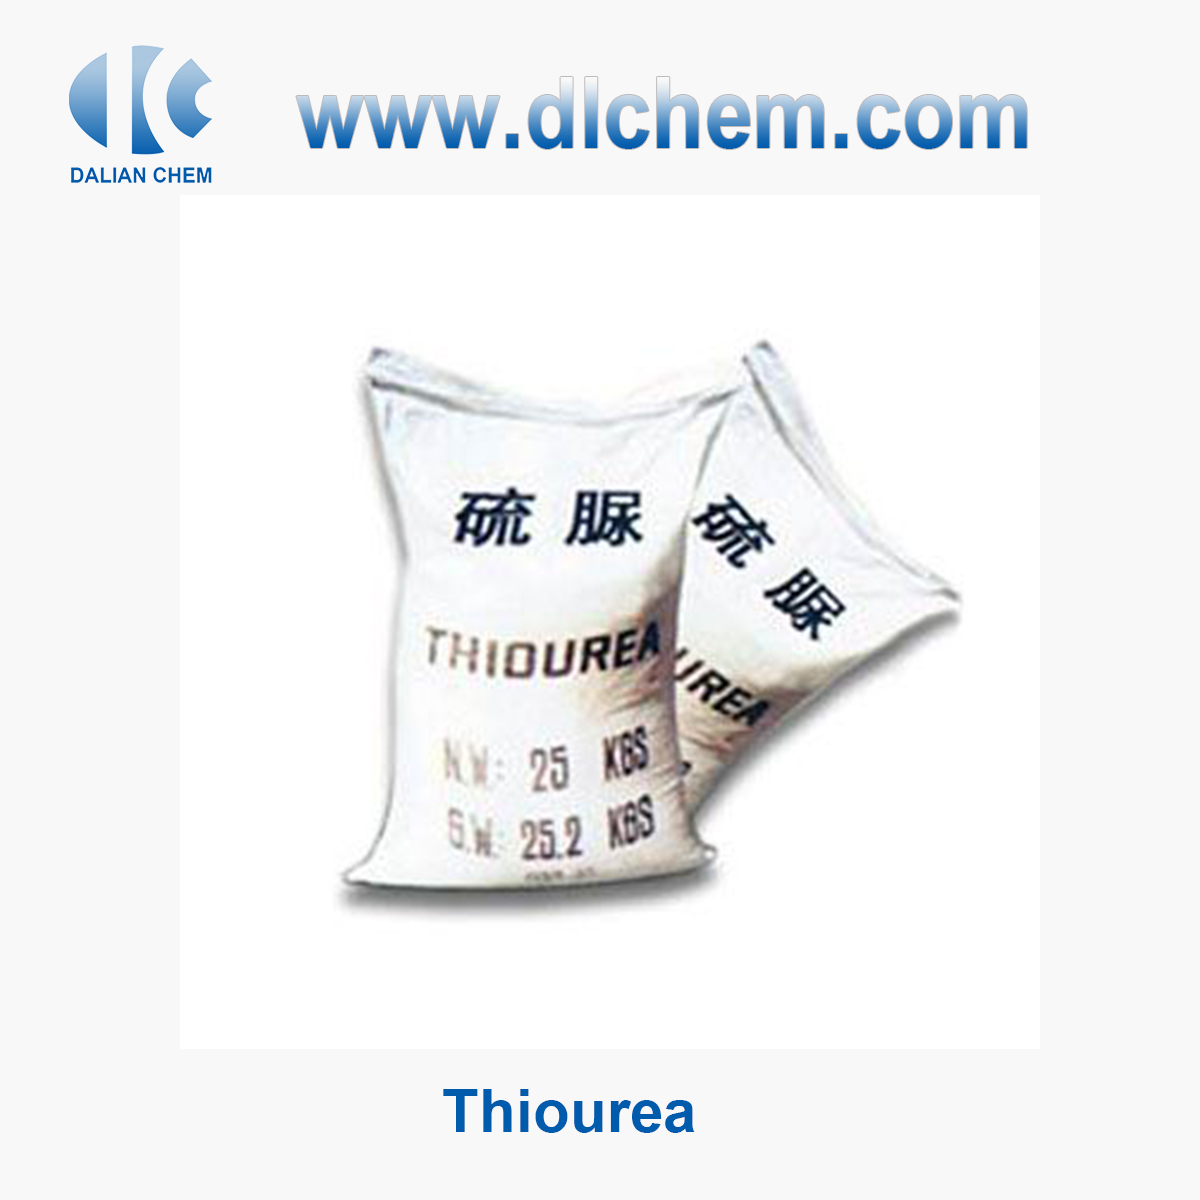 Hot sell Best Price Thiourea 99% FAS Factory Supplier in China